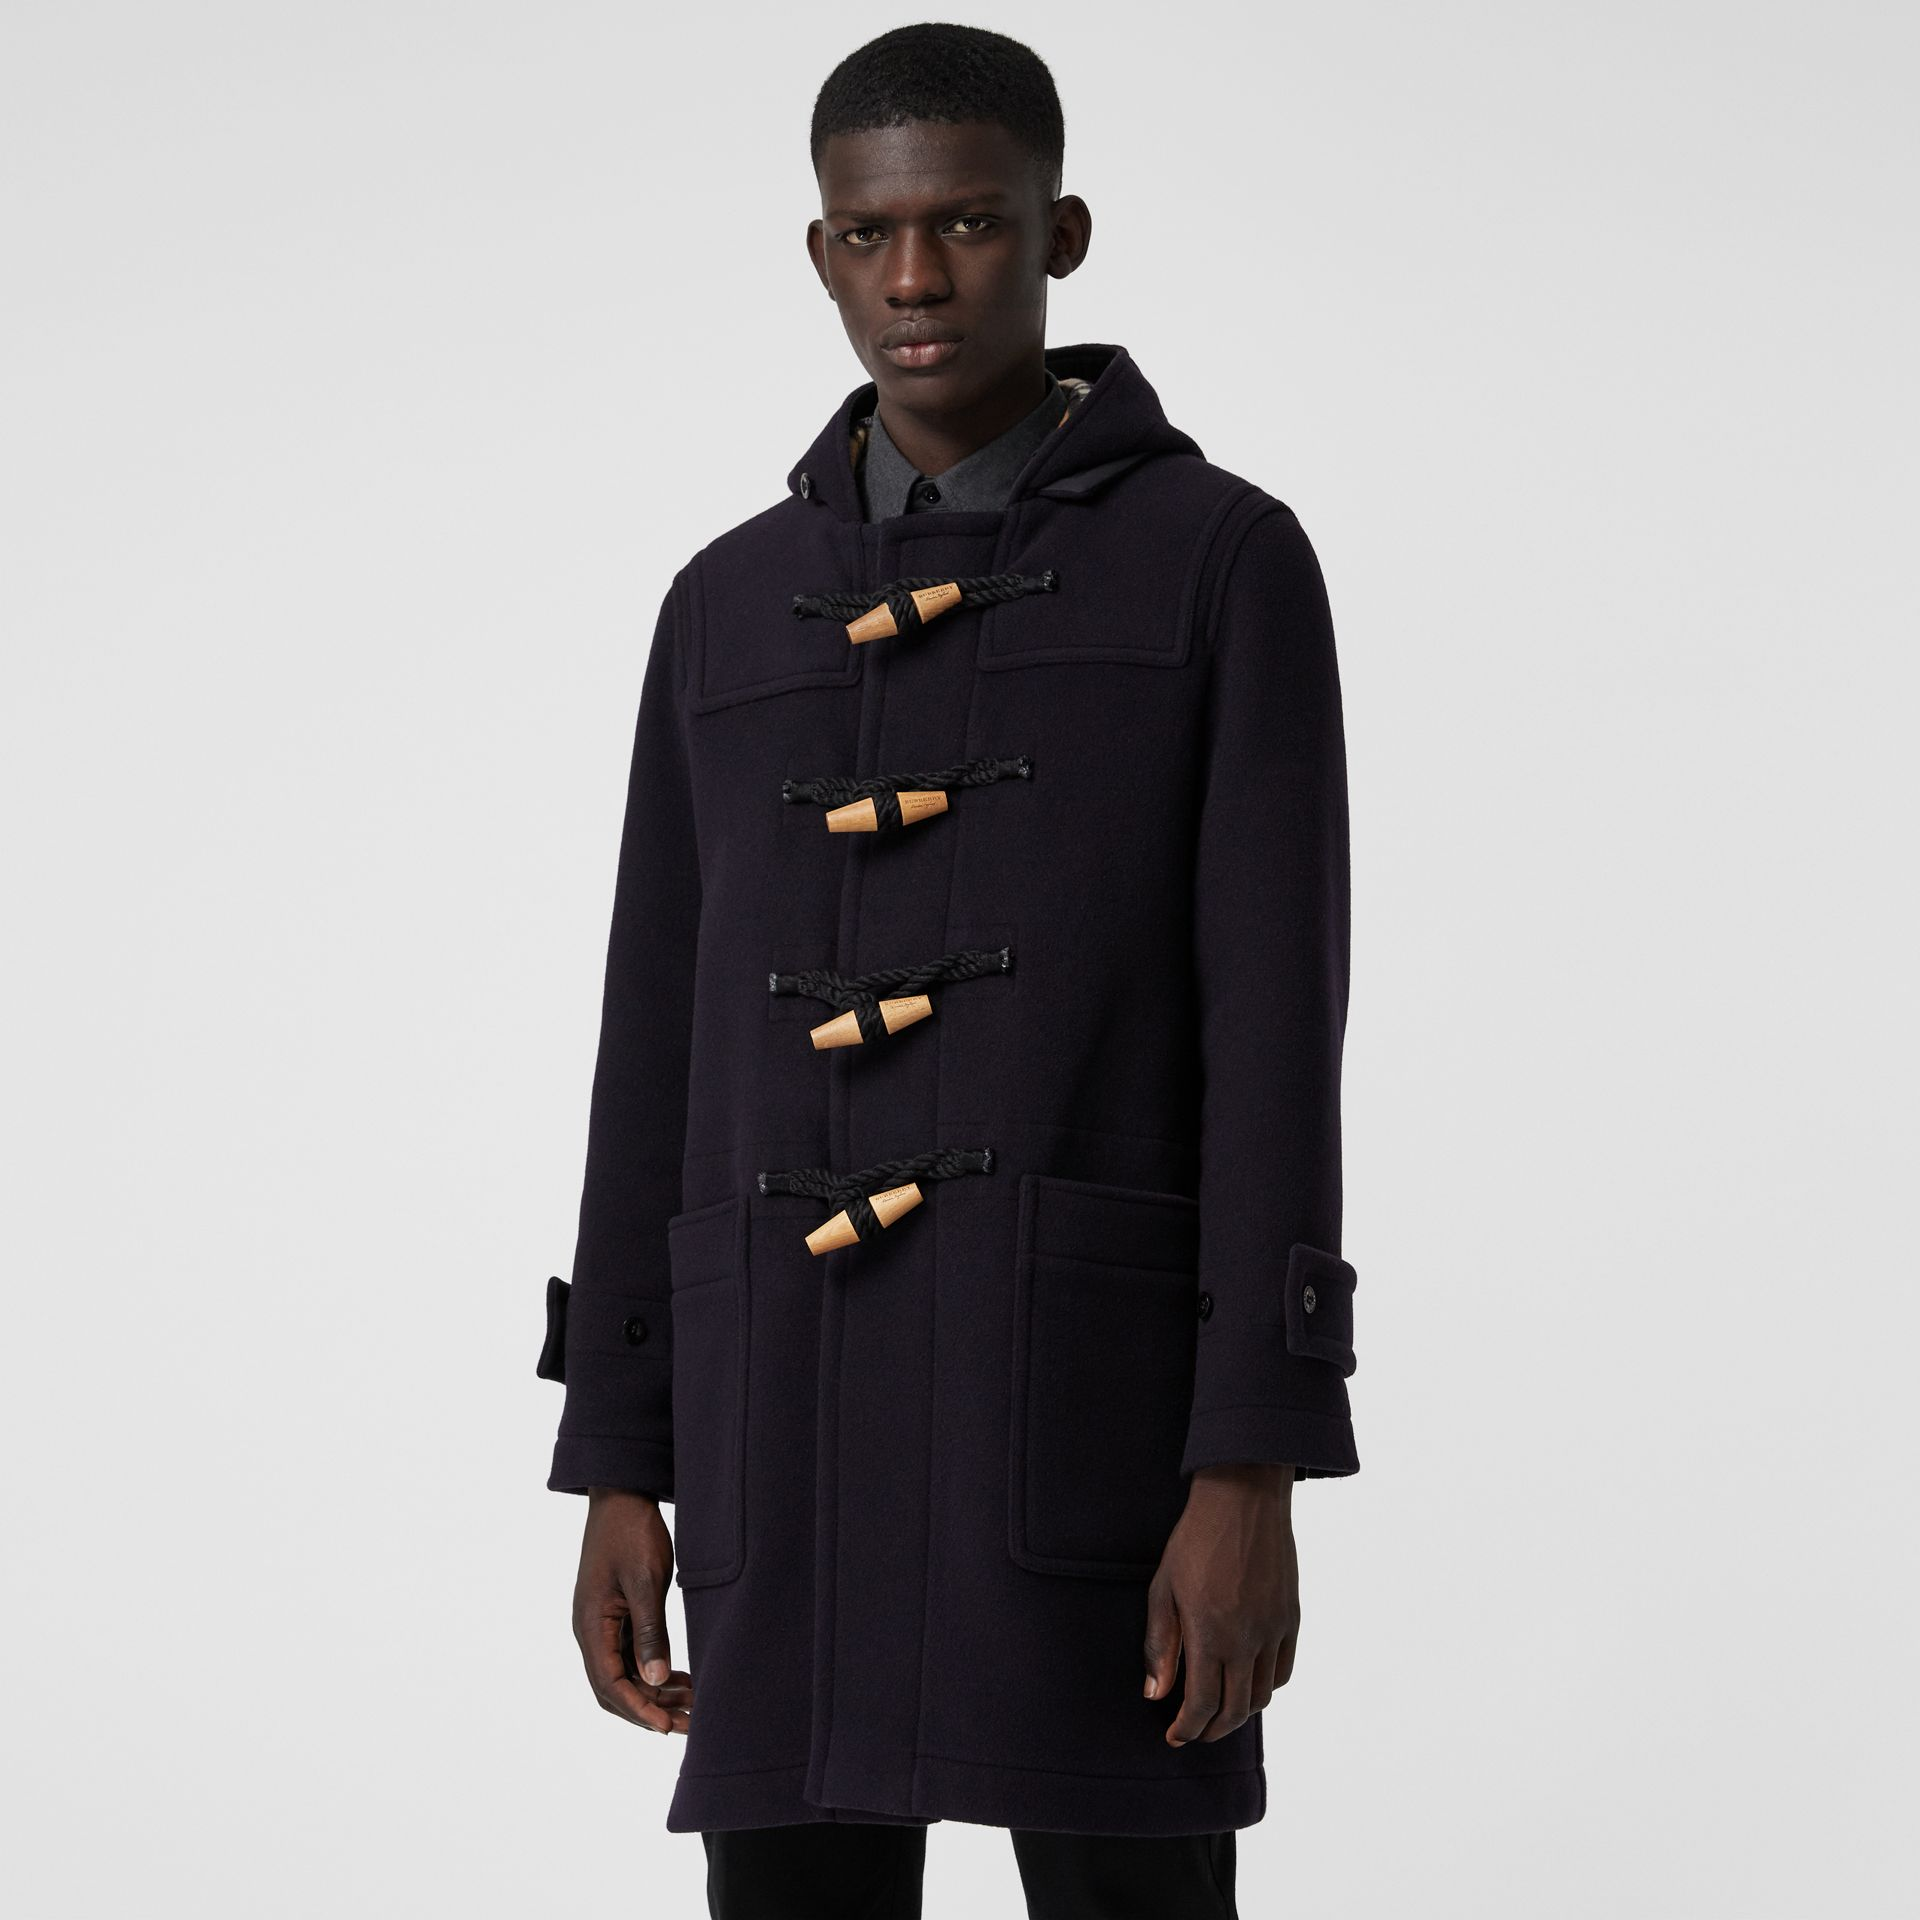 Vintage Check Detail Wool Blend Hooded Duffle Coat in Navy - Men | Burberry - gallery image 5